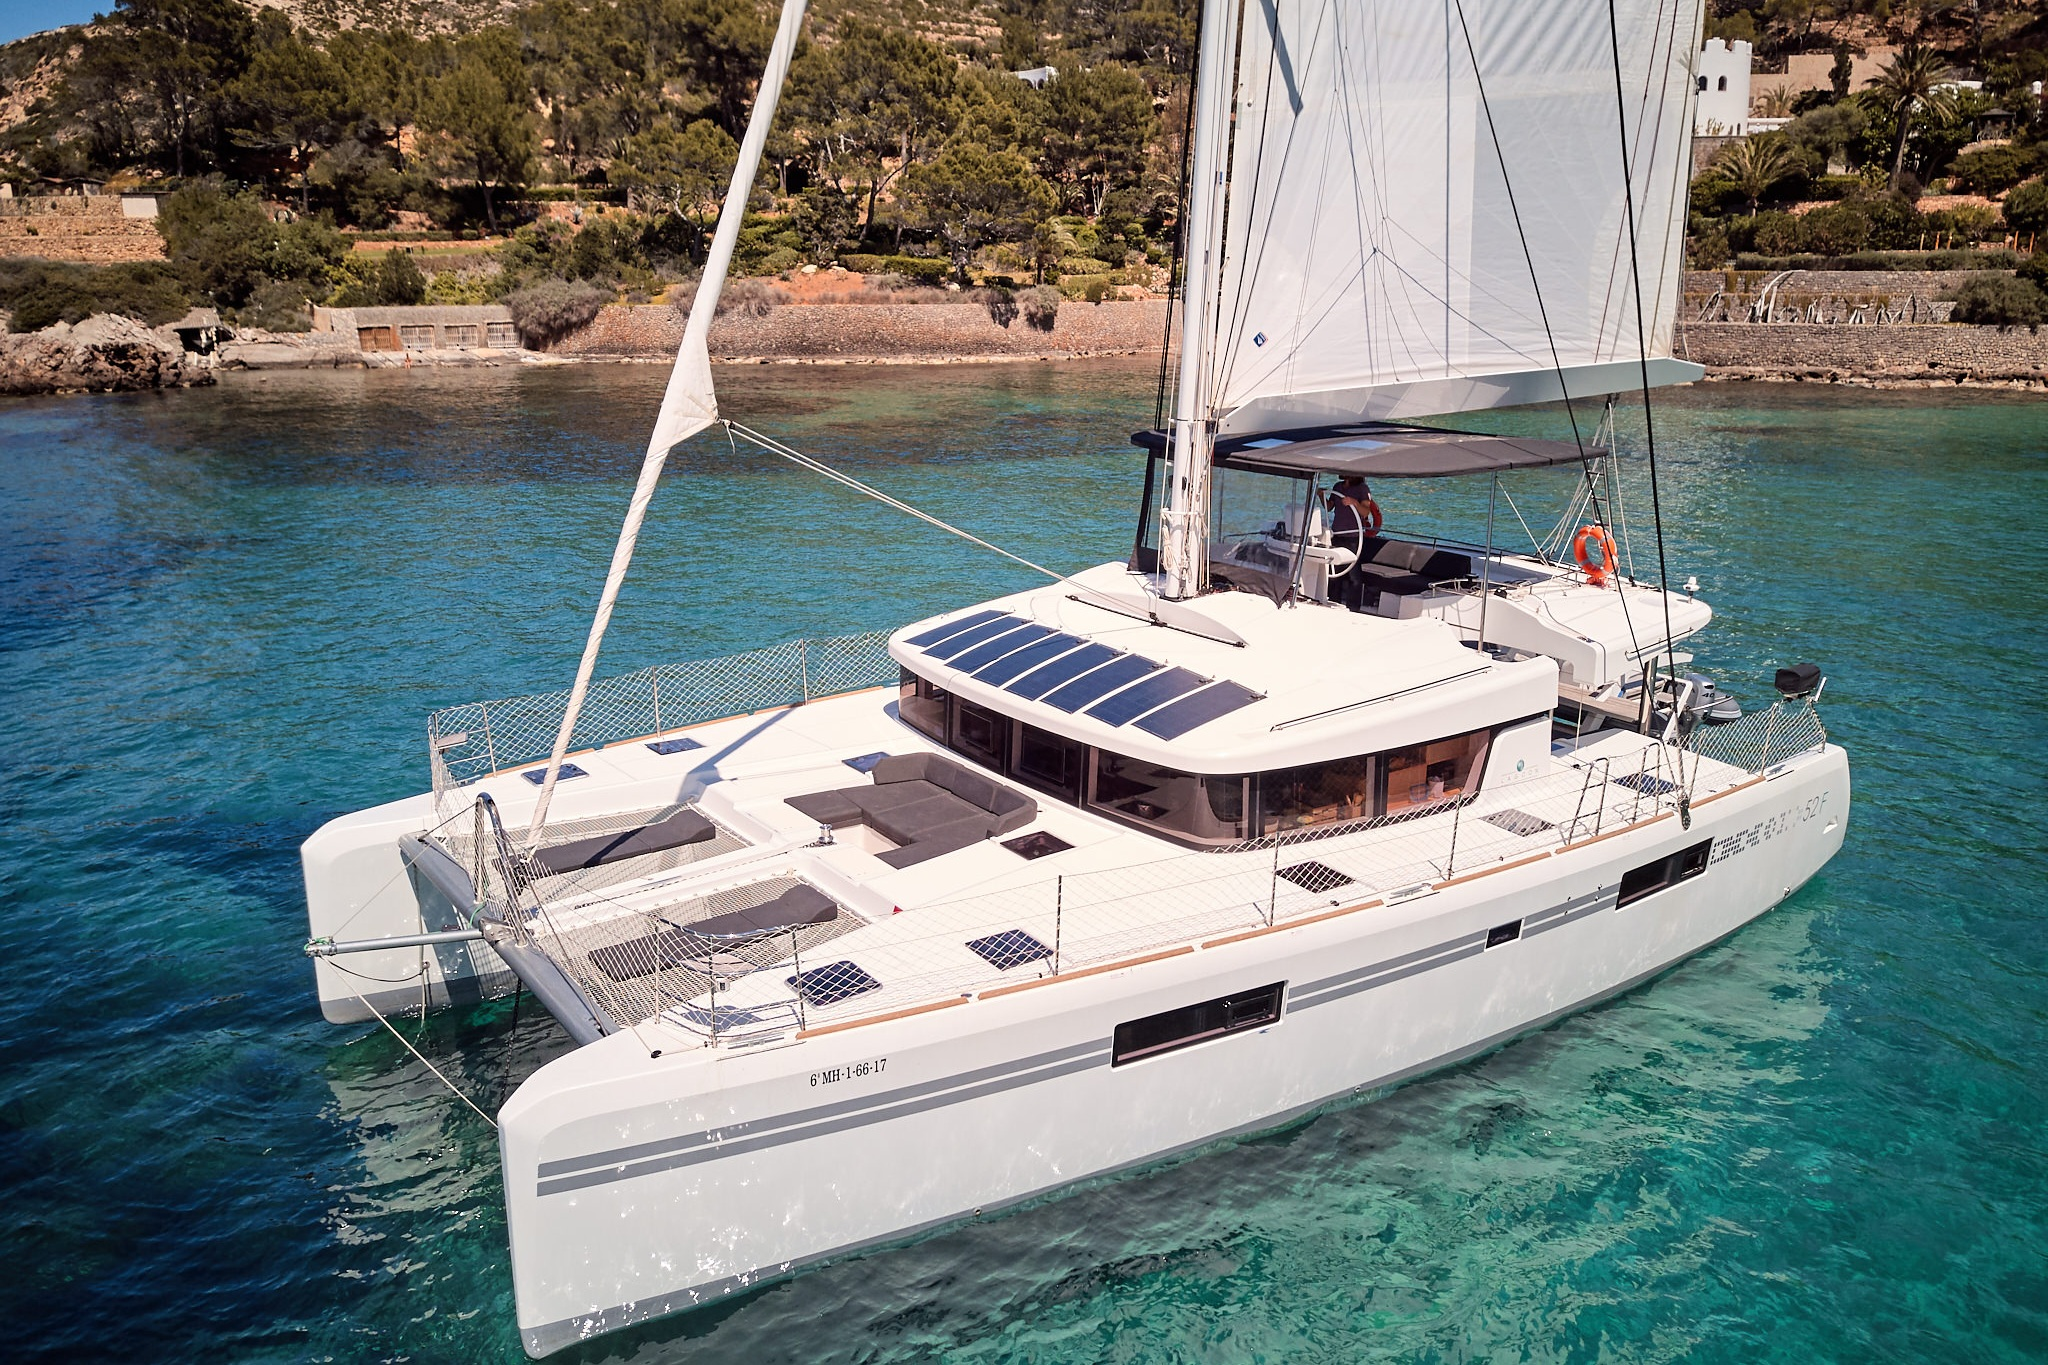 CATAMARAN LUXE 52 - Capacity: 12 | From €2275